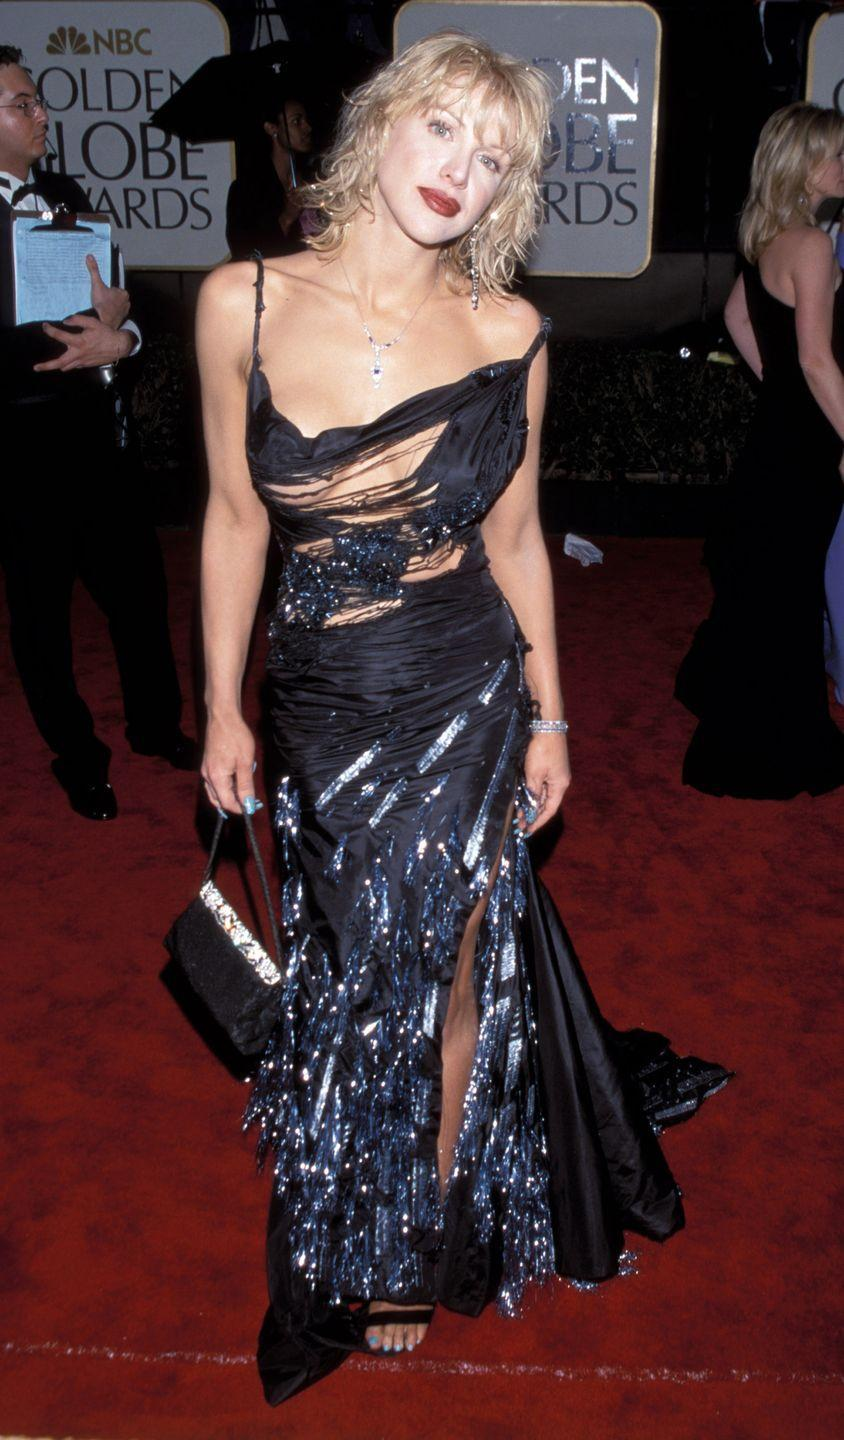 """<p>Courtney Love wore this <a href=""""https://www.theguardian.com/fashion/2019/apr/02/courtney-love-i-thought-this-dress-is-crazy-looking-but-ill-make-it-work"""" rel=""""nofollow noopener"""" target=""""_blank"""" data-ylk=""""slk:semi-shredded dress"""" class=""""link rapid-noclick-resp"""">semi-shredded dress</a> by John Galliano to the 2000 Golden Globes. It was controversial largely because it was part of a couture collection that was <a href=""""https://wwd.com/fashion-news/fashion-features/moment-87-homeless-by-dior-3346959/"""" rel=""""nofollow noopener"""" target=""""_blank"""" data-ylk=""""slk:&quot;inspired&quot; by Paris' homeless population"""" class=""""link rapid-noclick-resp"""">""""inspired"""" by Paris' homeless population</a>, which some felt was insensitive to those who actually experience homelessness. </p>"""